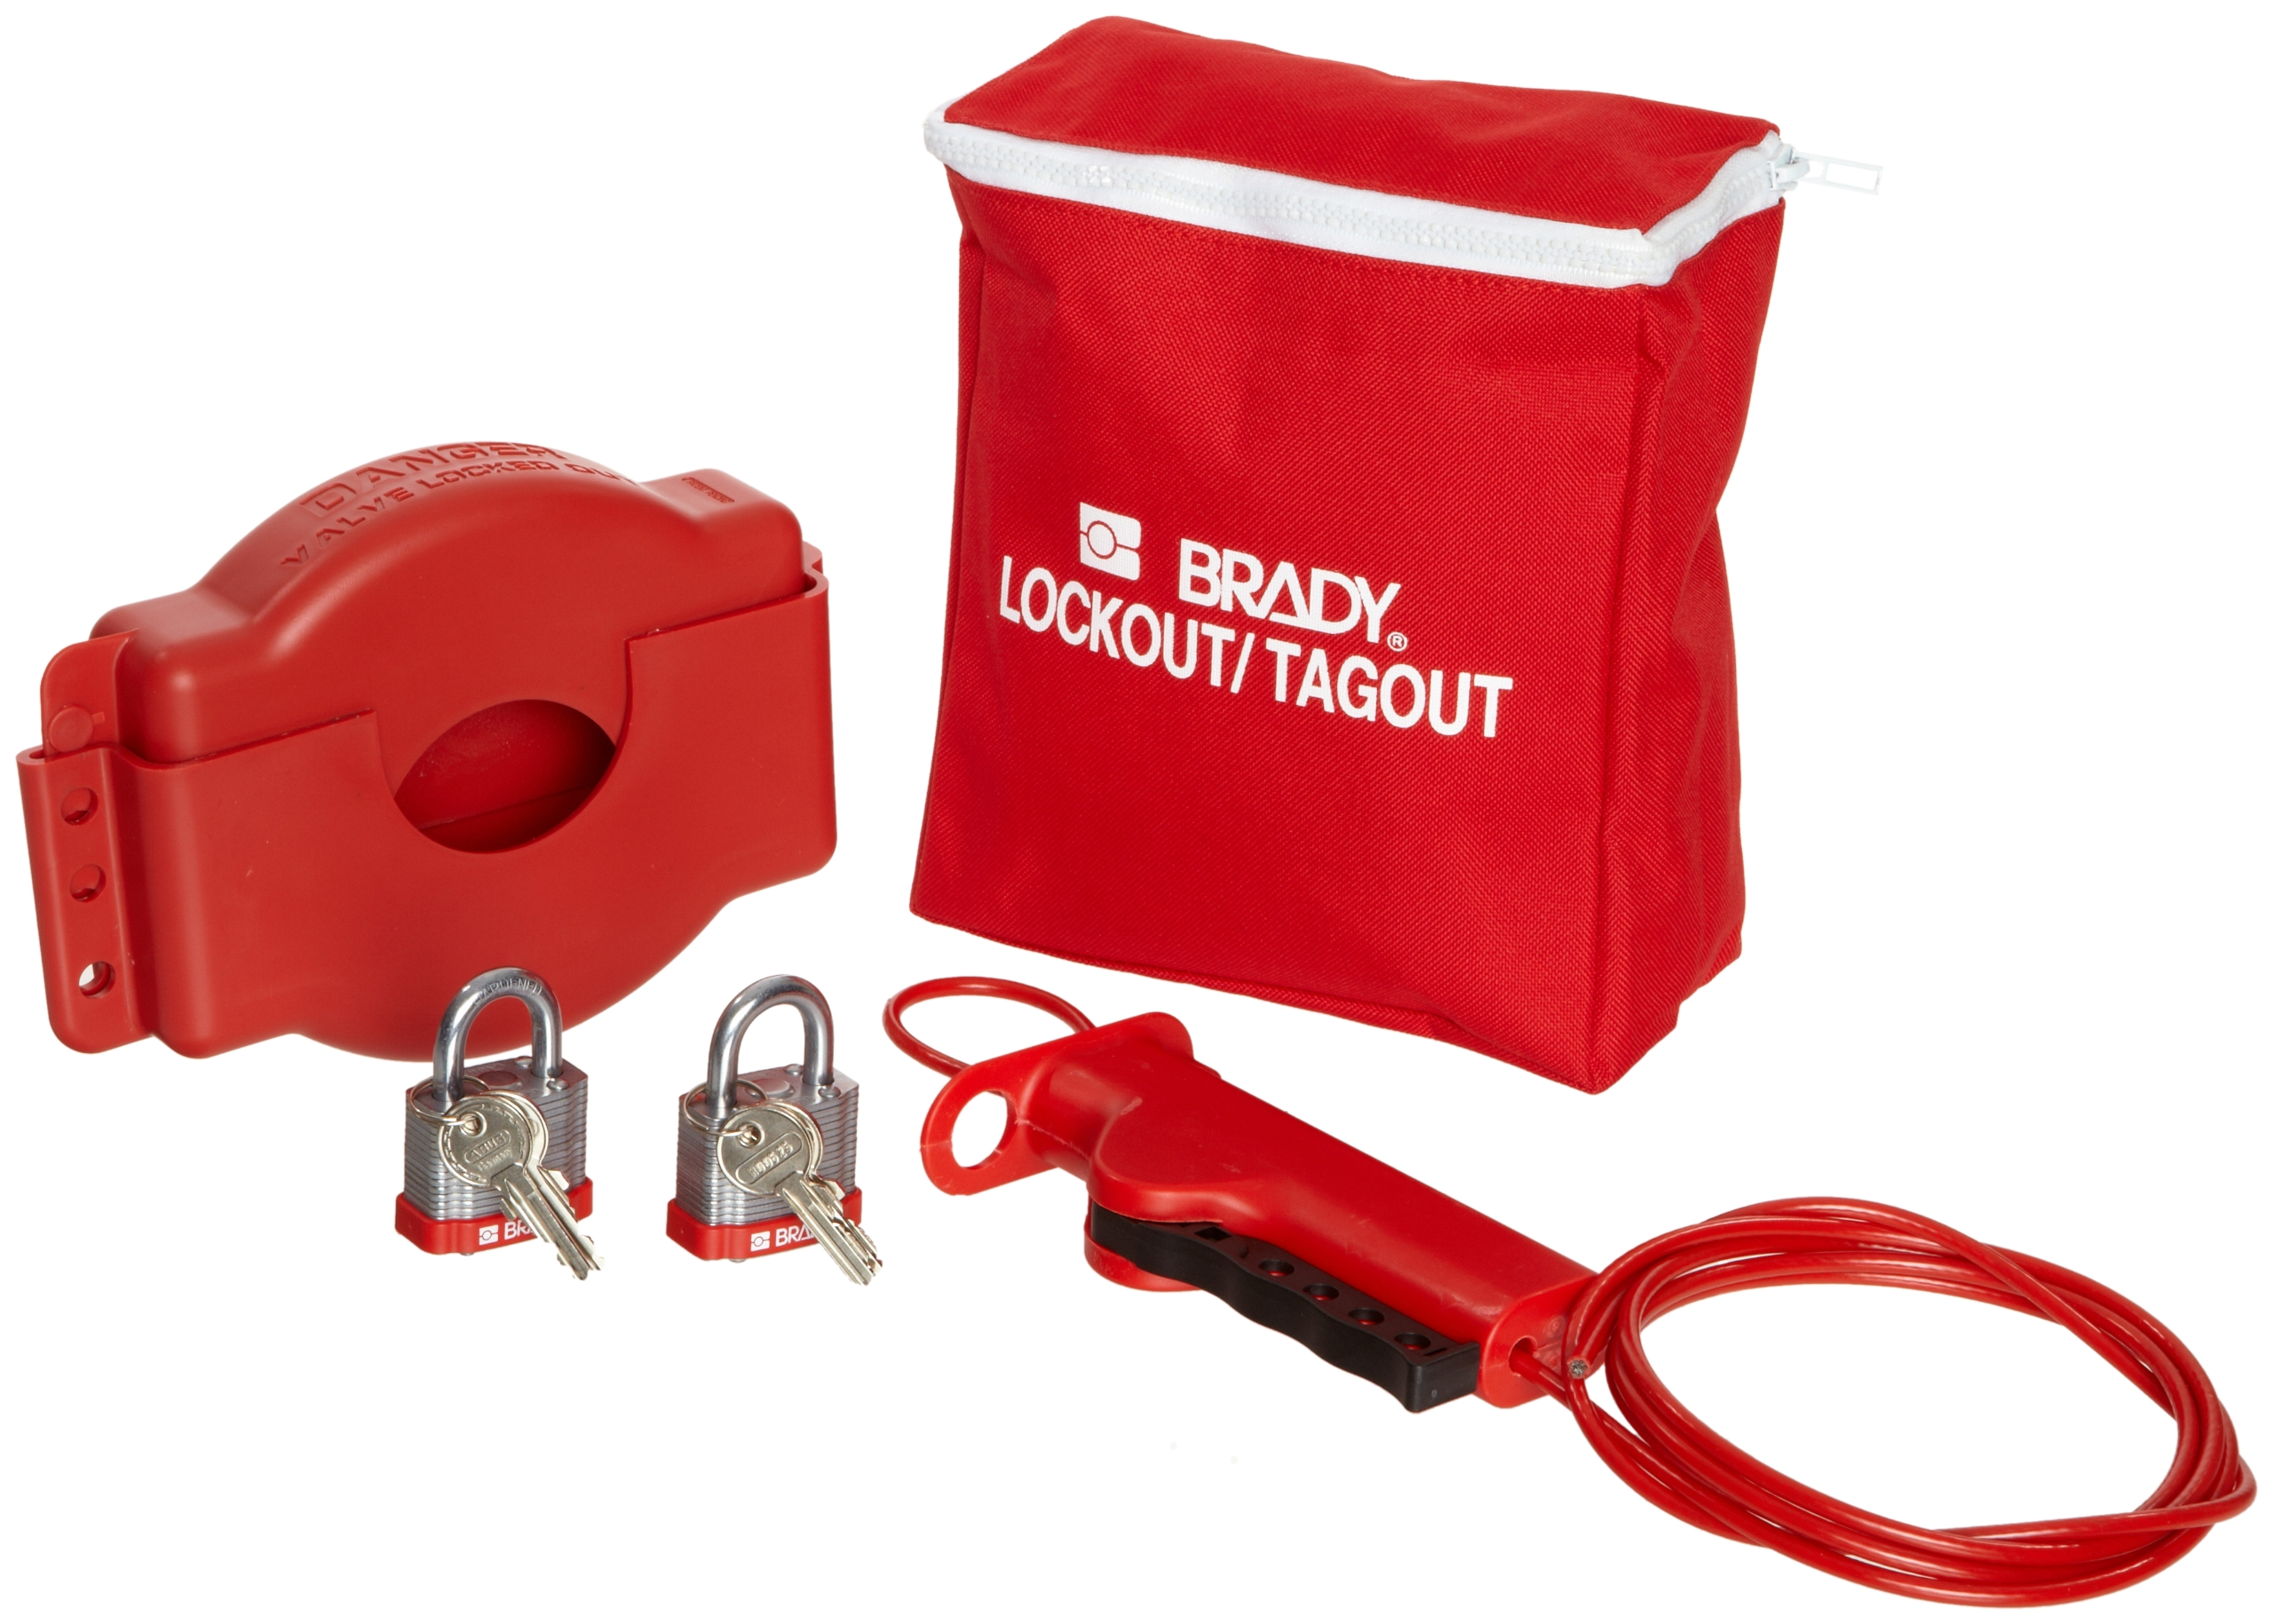 Brady Gate Valve Lockout Pouch Kit, Includes 2 Steel Padlocks and 2 Tags